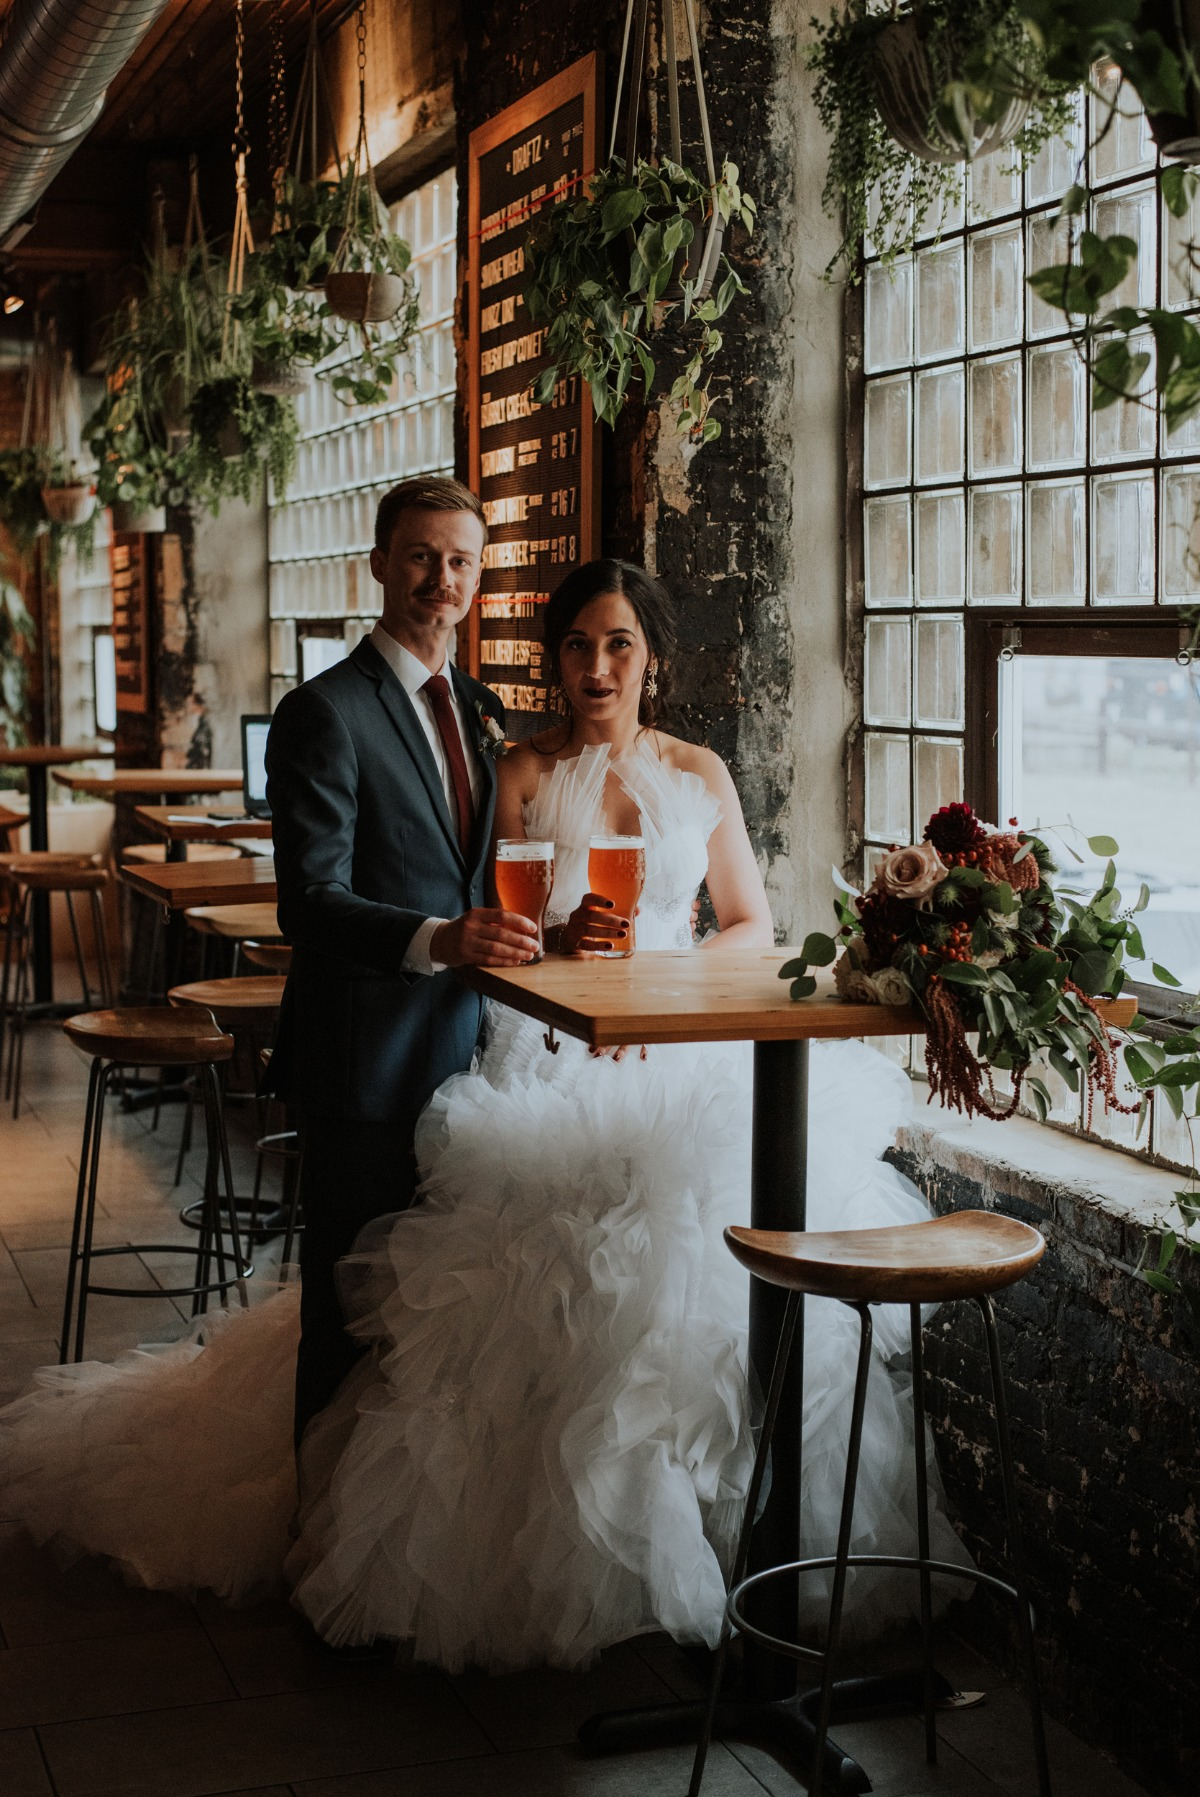 Will & Grace's Moody and Chic Chicago Wedding at Half Sour